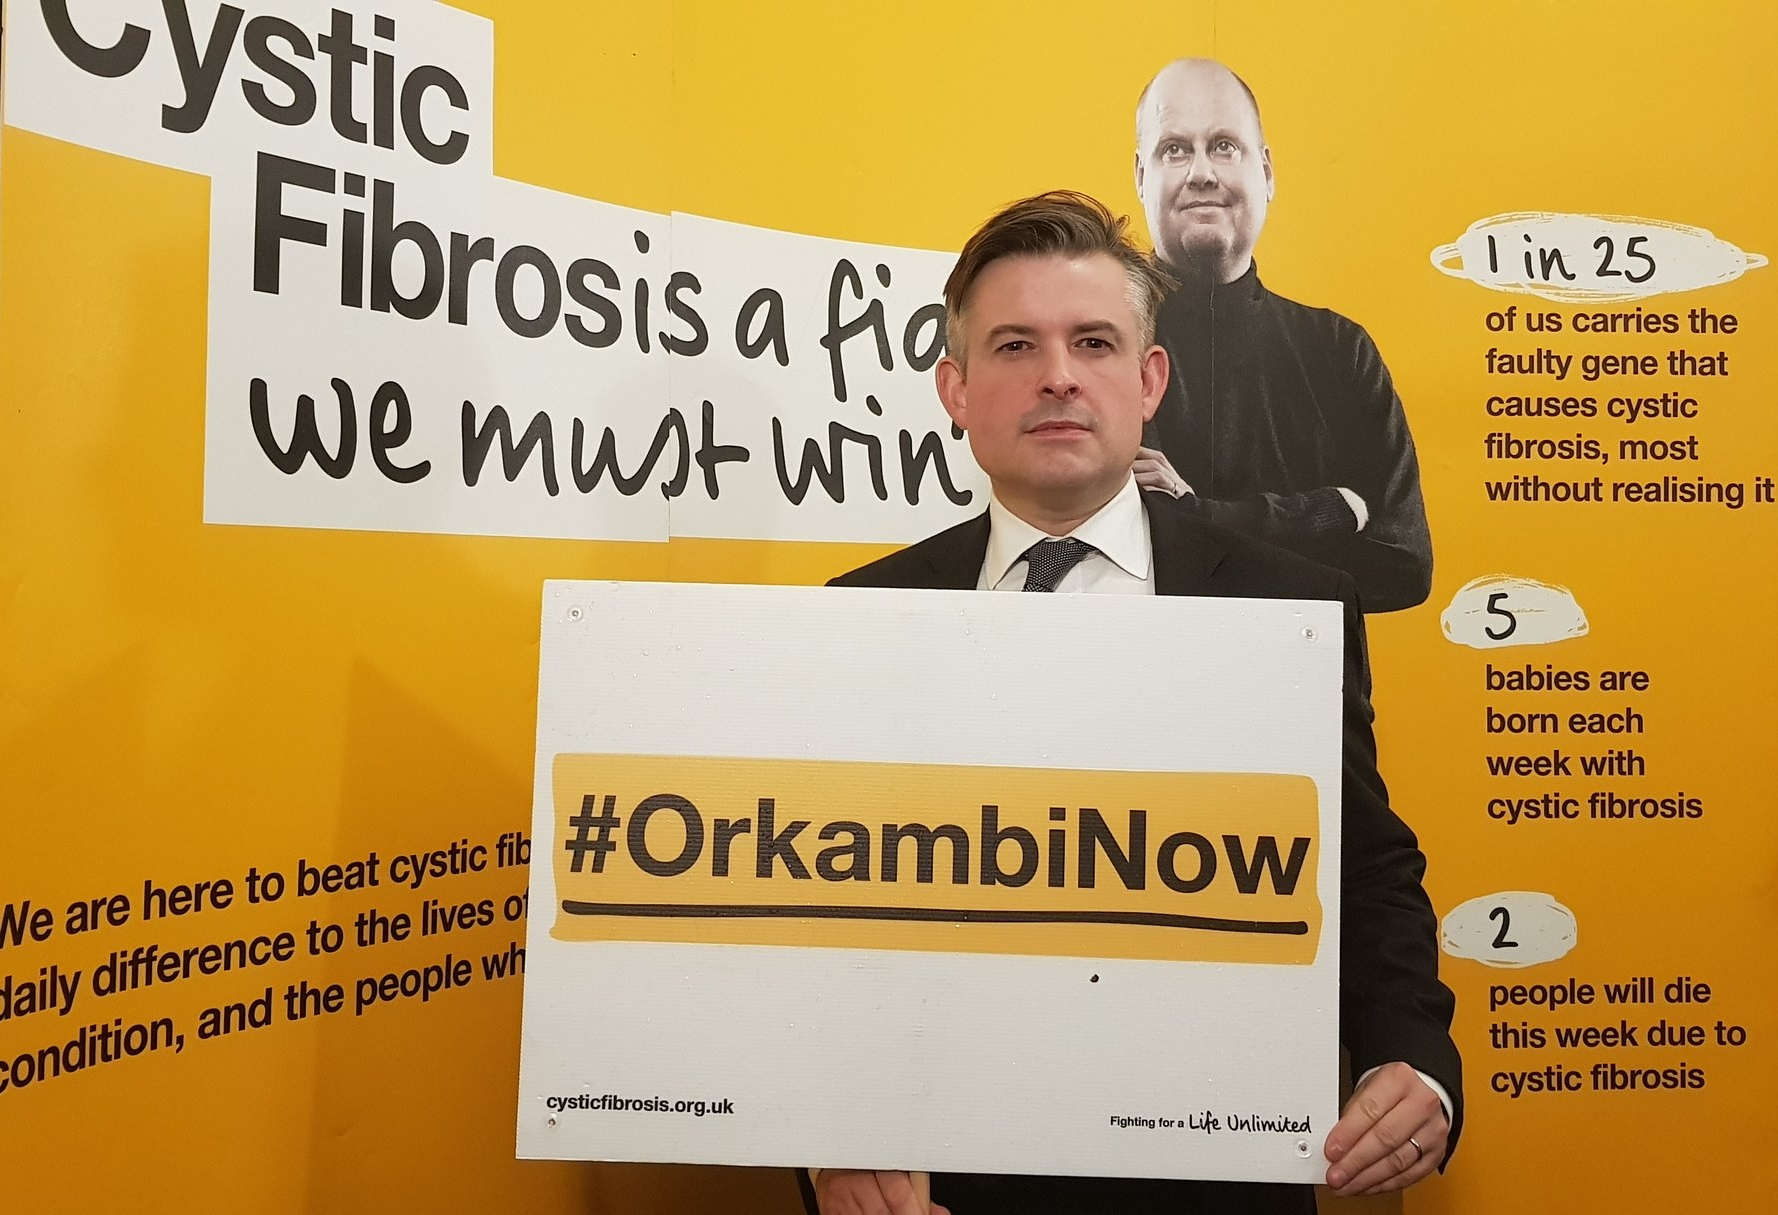 Jon joined MPs of all Parties calling to end the wait for access to Orkambi for people with cystic fibrosis in the UK - Monday November 19 2018